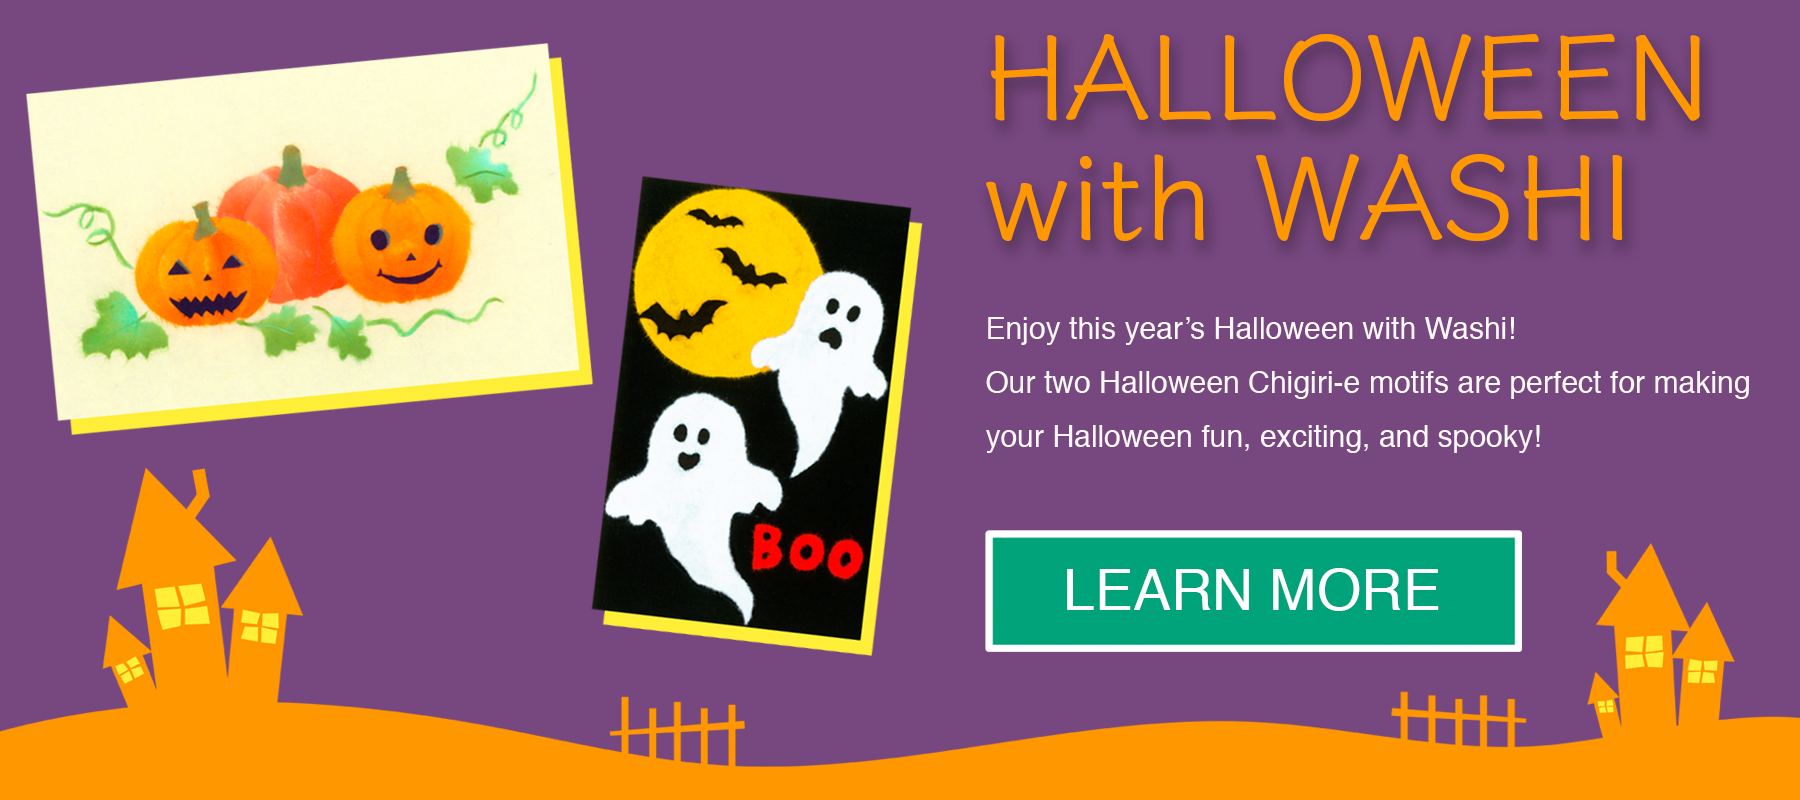 Halloween with Washi - Enjoy this year's Halloween with Washi!